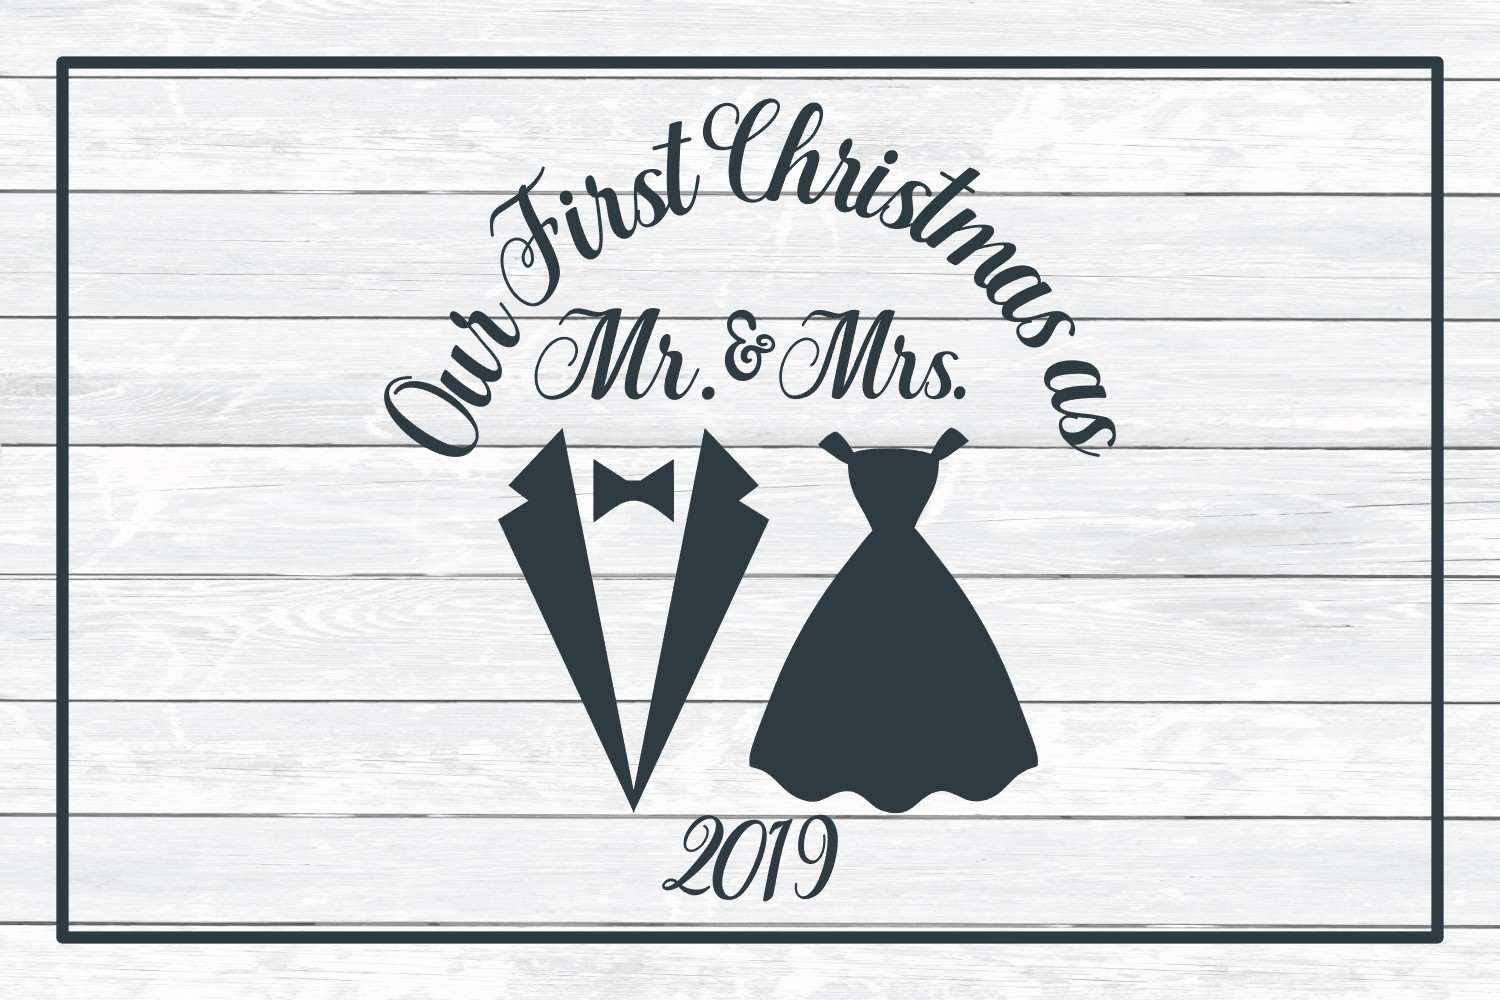 Our First Christmas as Mr. & Mrs., SVG Cut File for Crafters example image 3